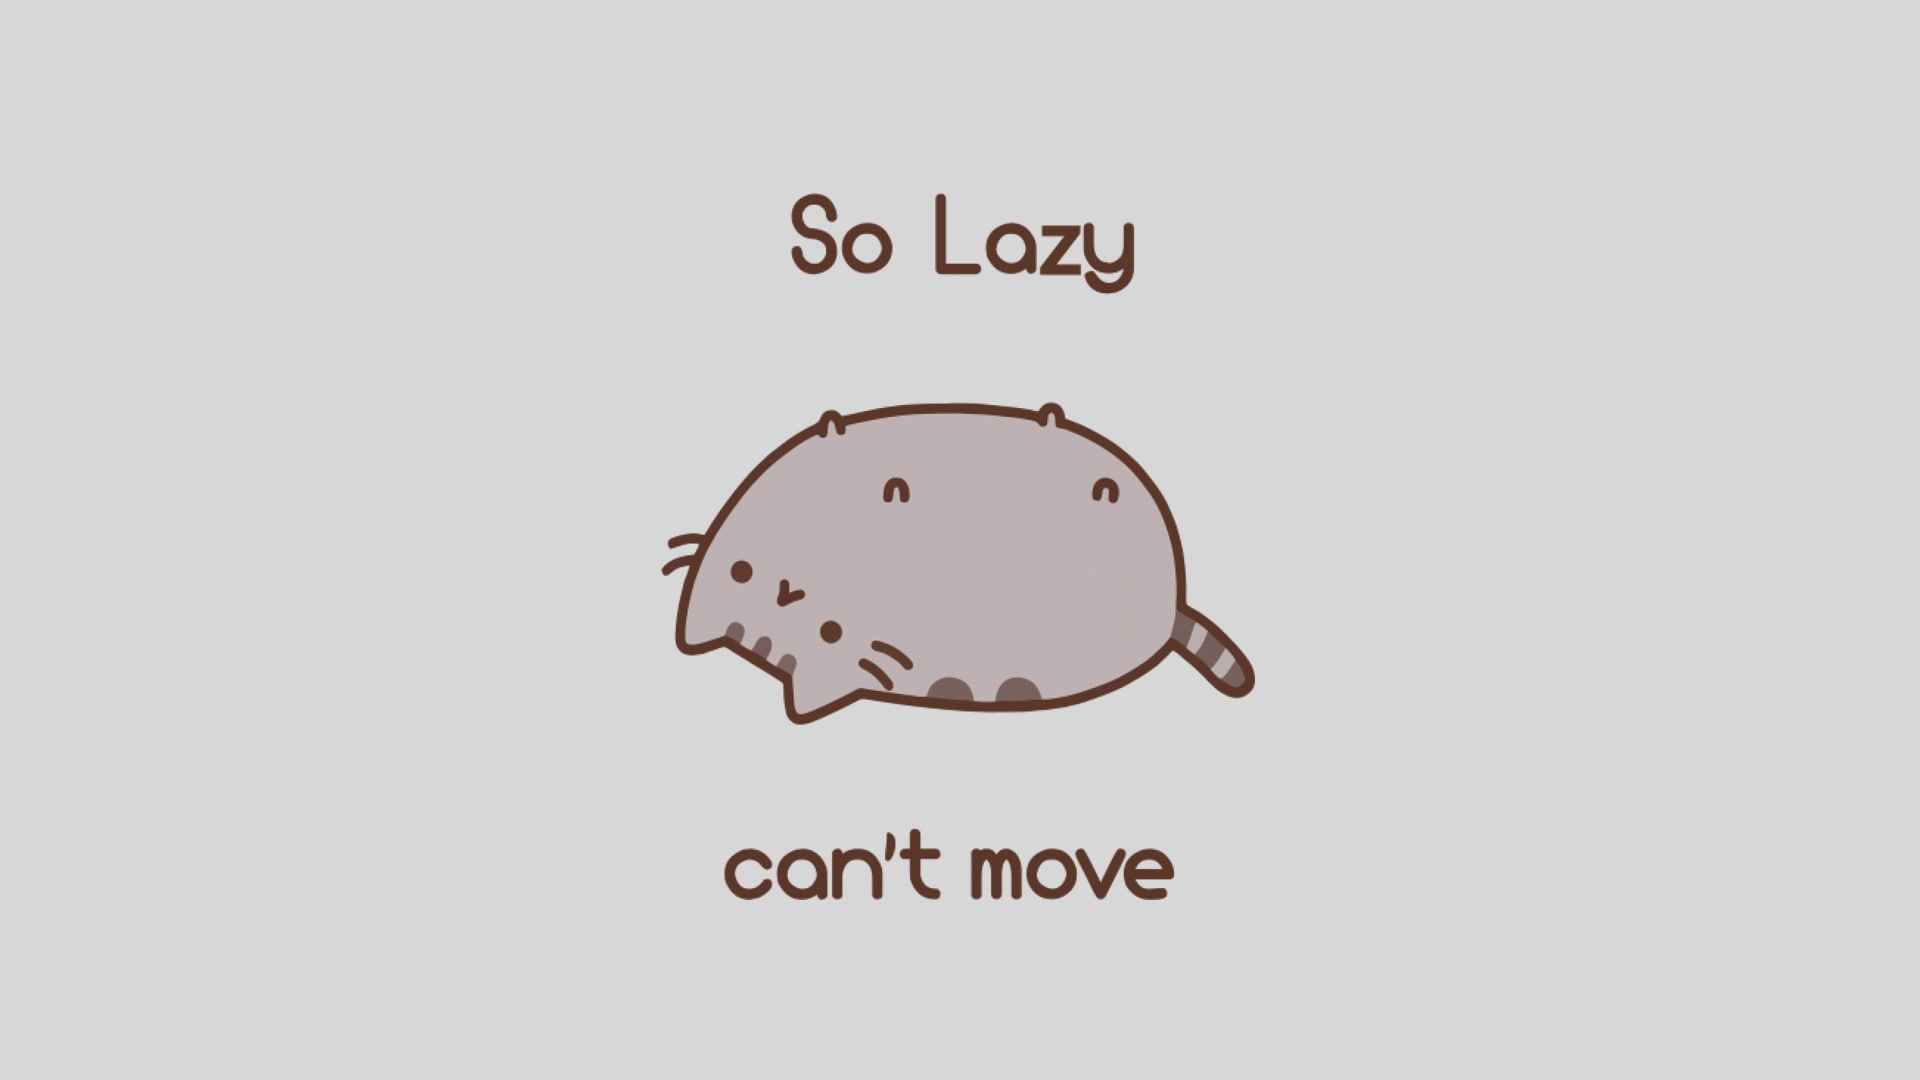 Pusheen Lazy Cat Memes Humor Minimalism Typography Simple Background Animals Cartoon 1080p Wallpaper Hdwallp Cat Wallpaper Meme Background Pusheen